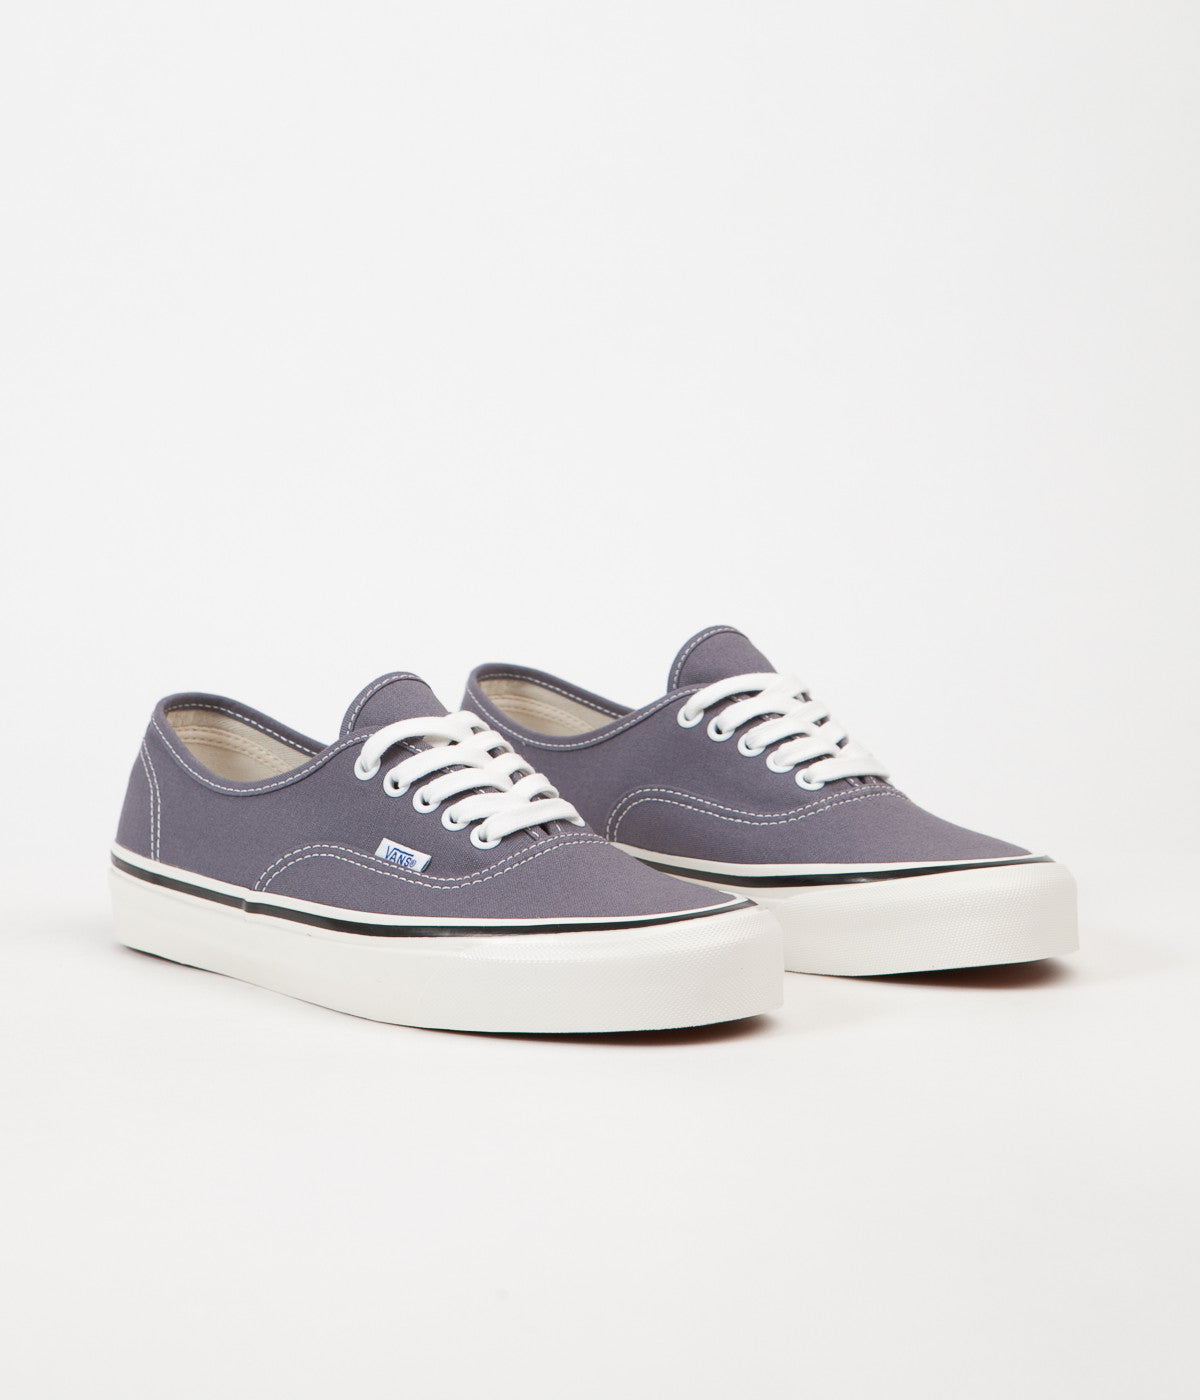 Vans Anaheim Factory Authentic 44 sneakers